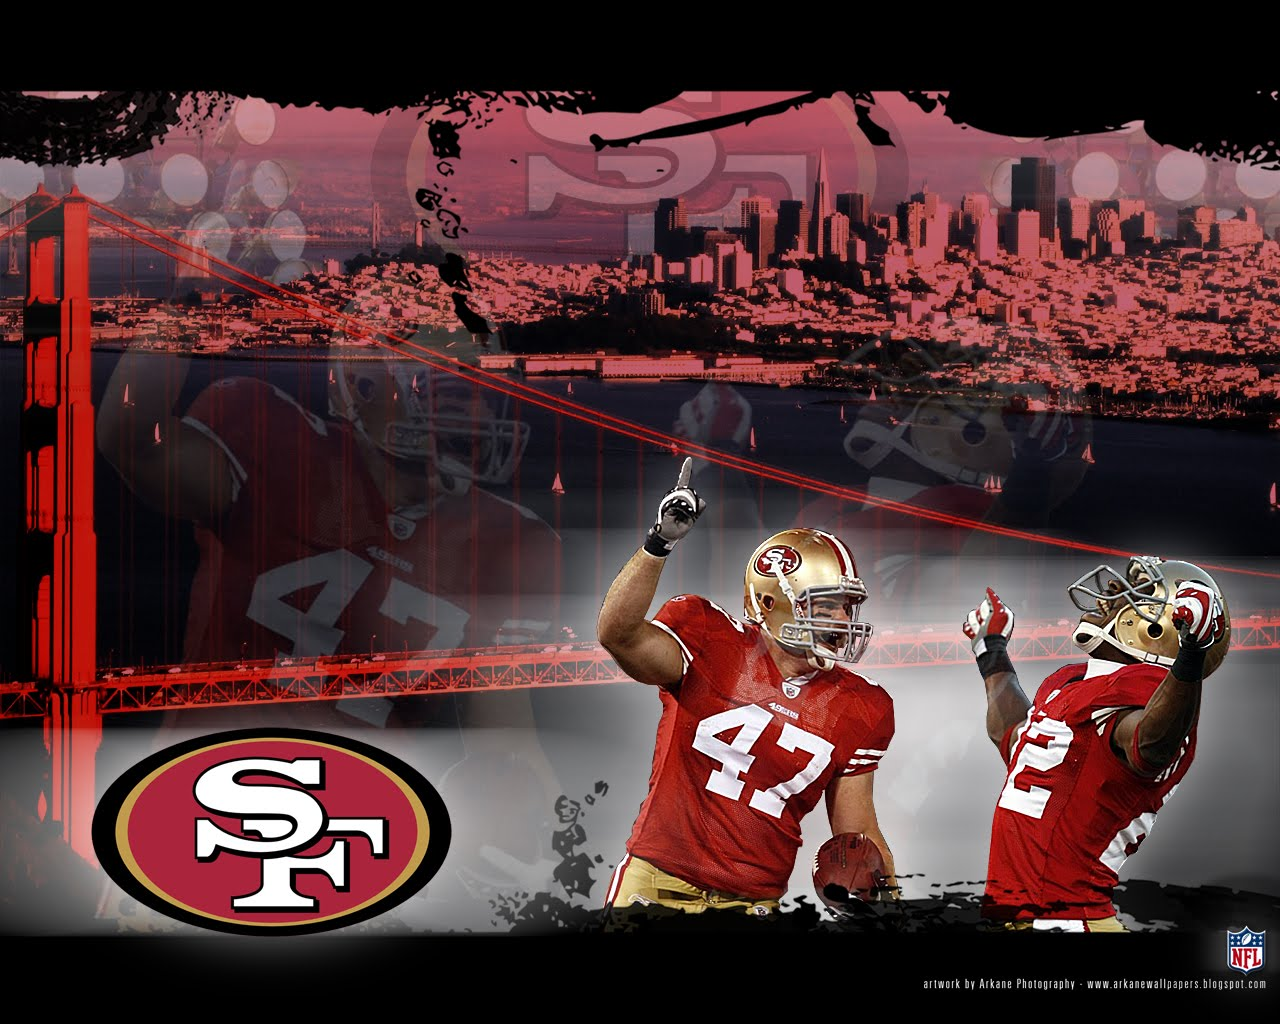 New San Francisco 49ers background San Francisco 49ers wallpapers 1280x1024